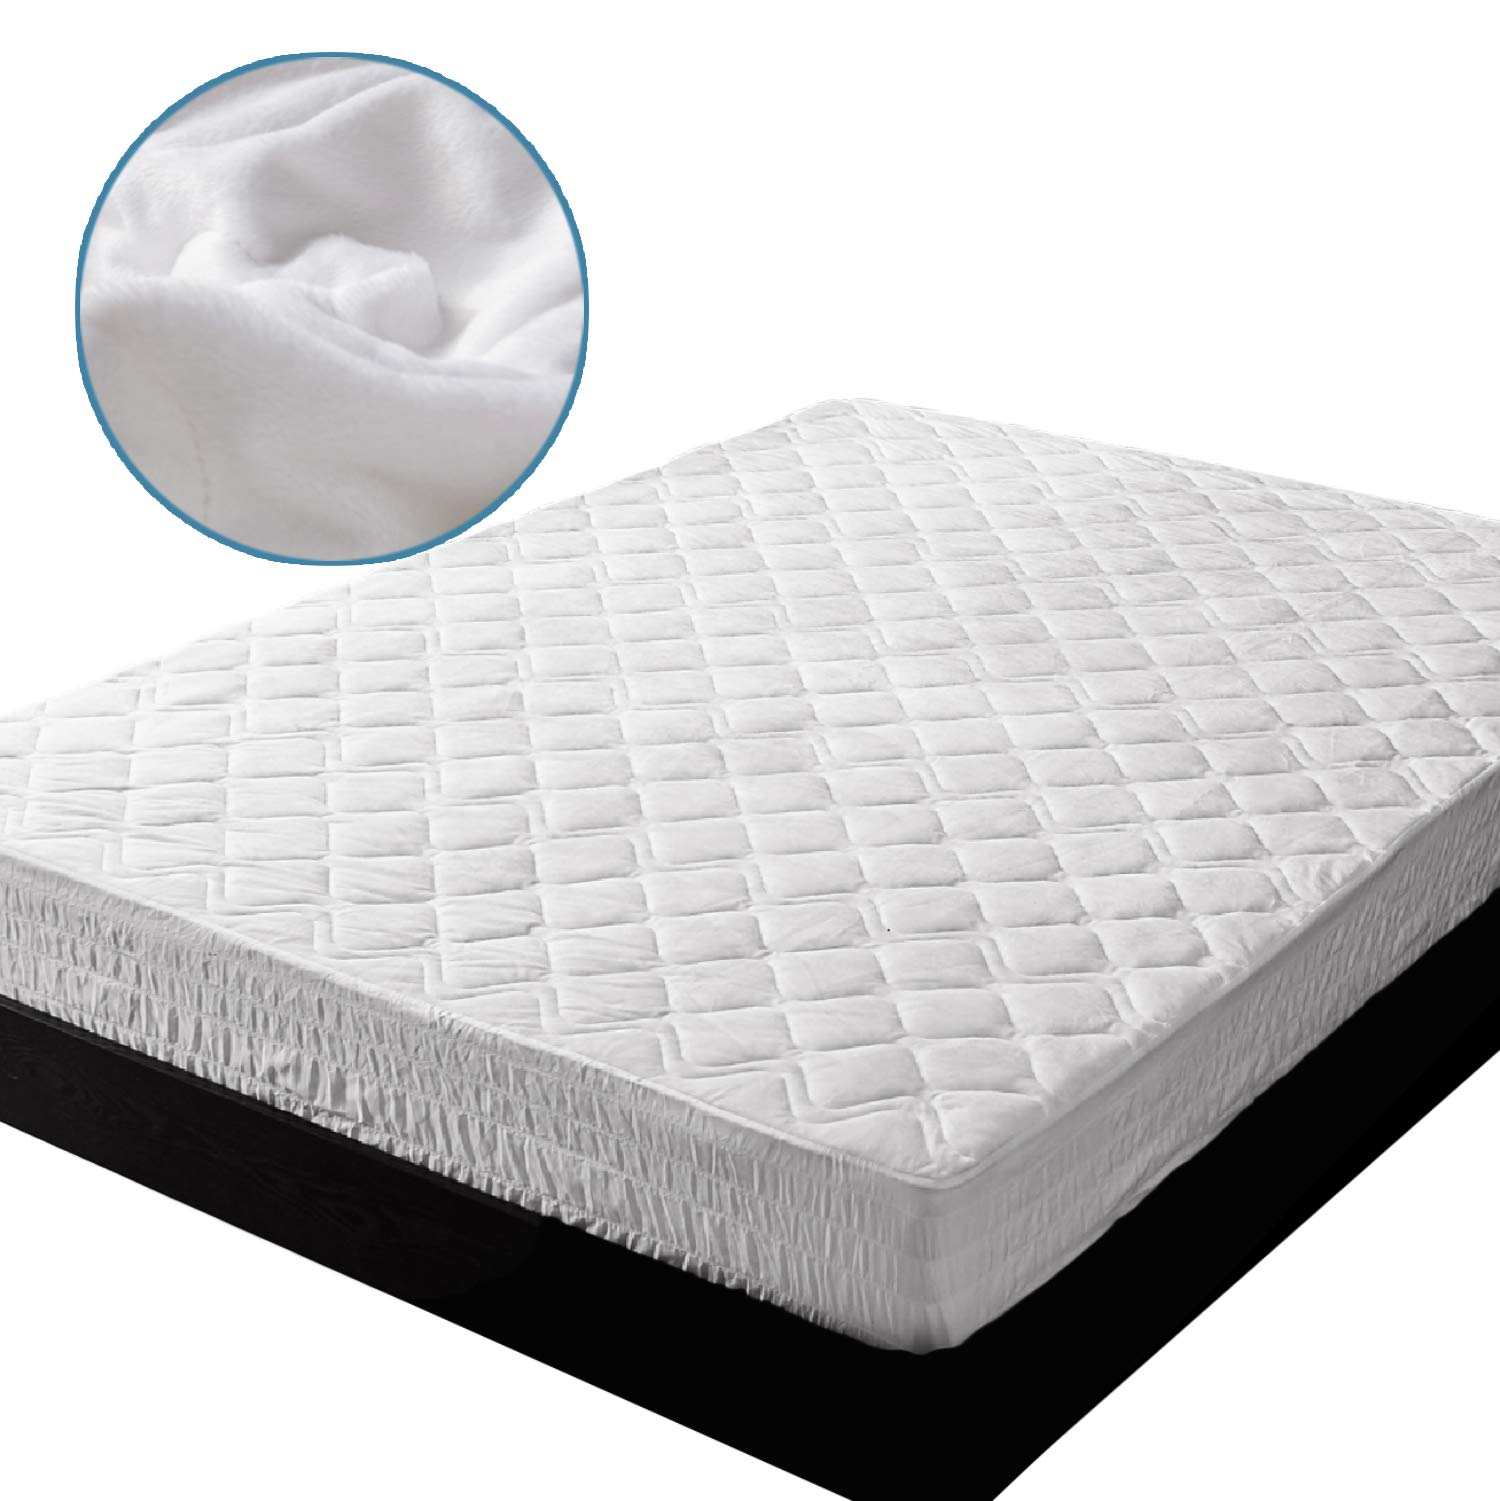 Bedsure Super Soft & Warm Mattress Pad Extra Large Twin XL Hypoallergenic Quilted Mattress Protector,Breathable Microplush Dust Mite Proof Fitted Sheet Mattress Cover,Up to 18'' Deep Pocket